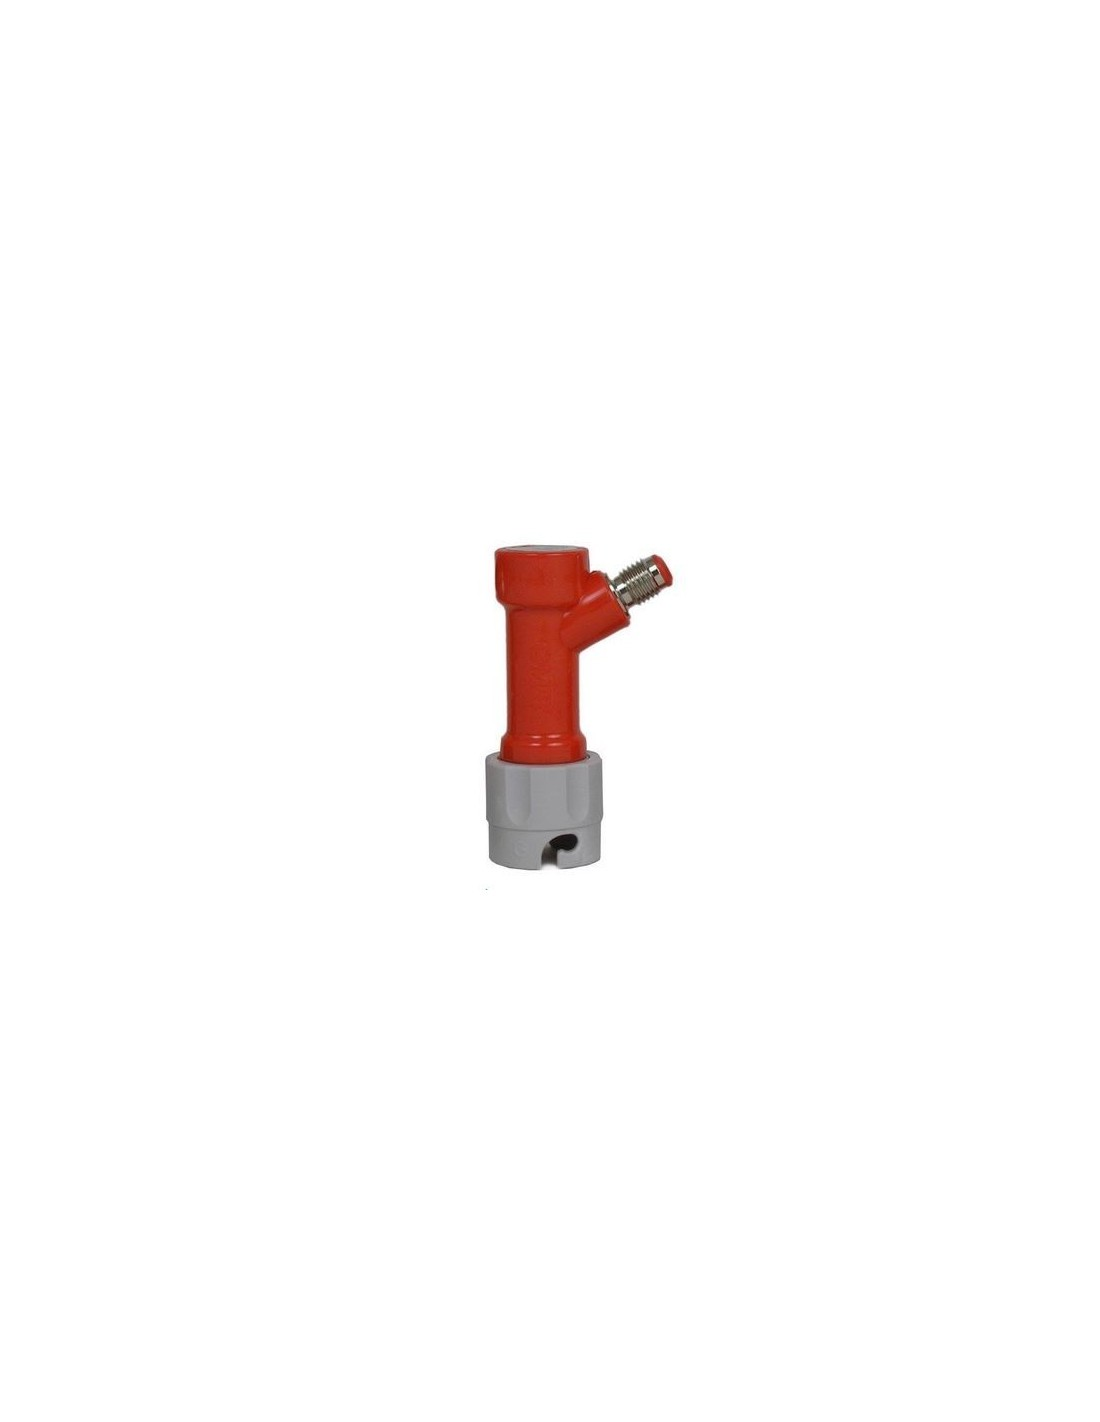 """UPP00026 - Pin lock gas disconnect for Cornelius kegs with 7/16"""" thread"""